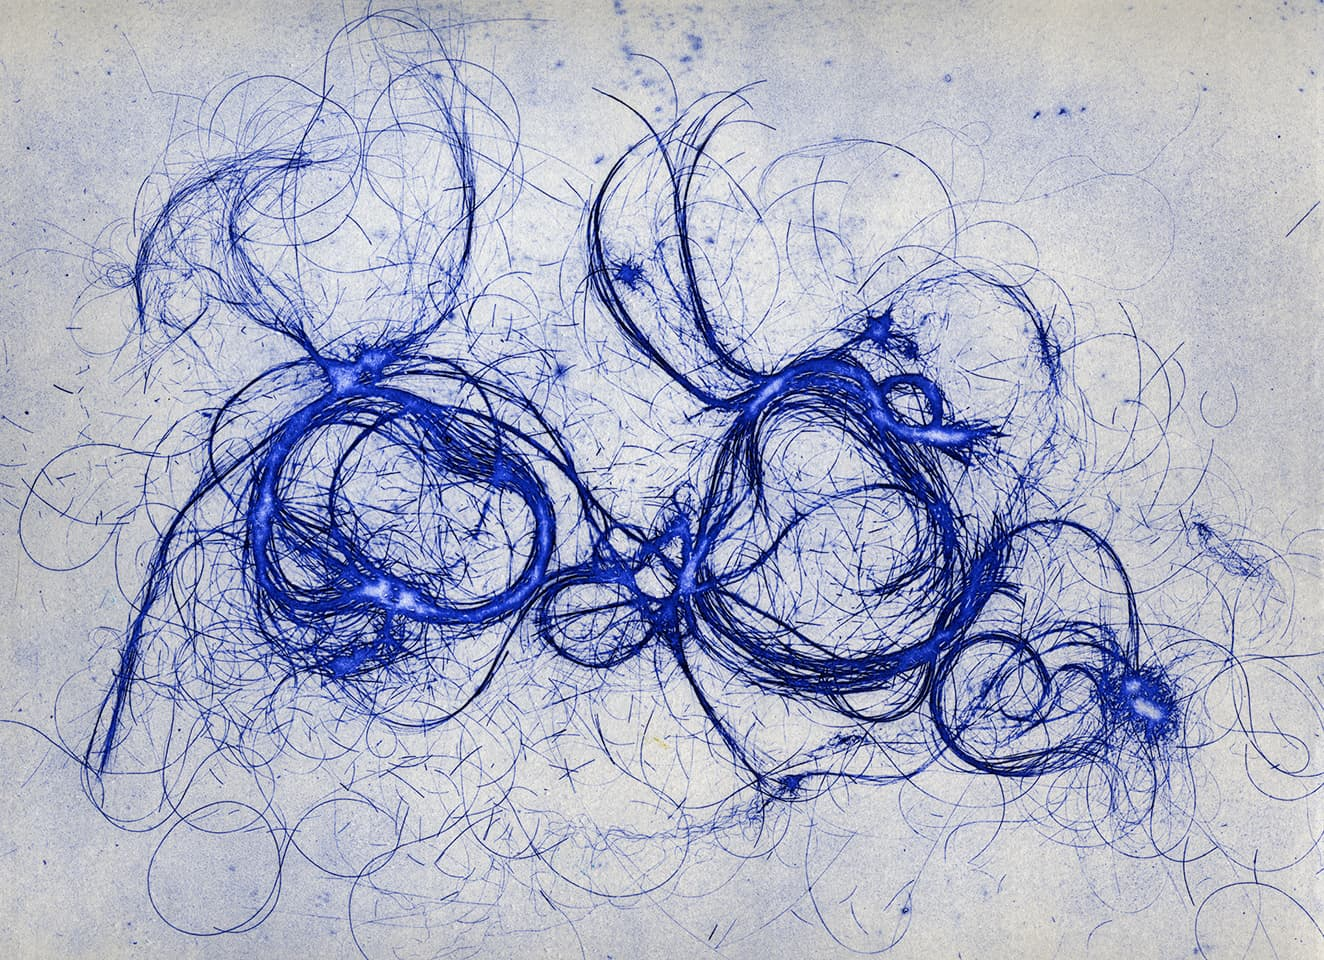 <strong>The Entangled Self 6</strong>, Susan Aldworth, etching, 25 x 31 cms, 2014.